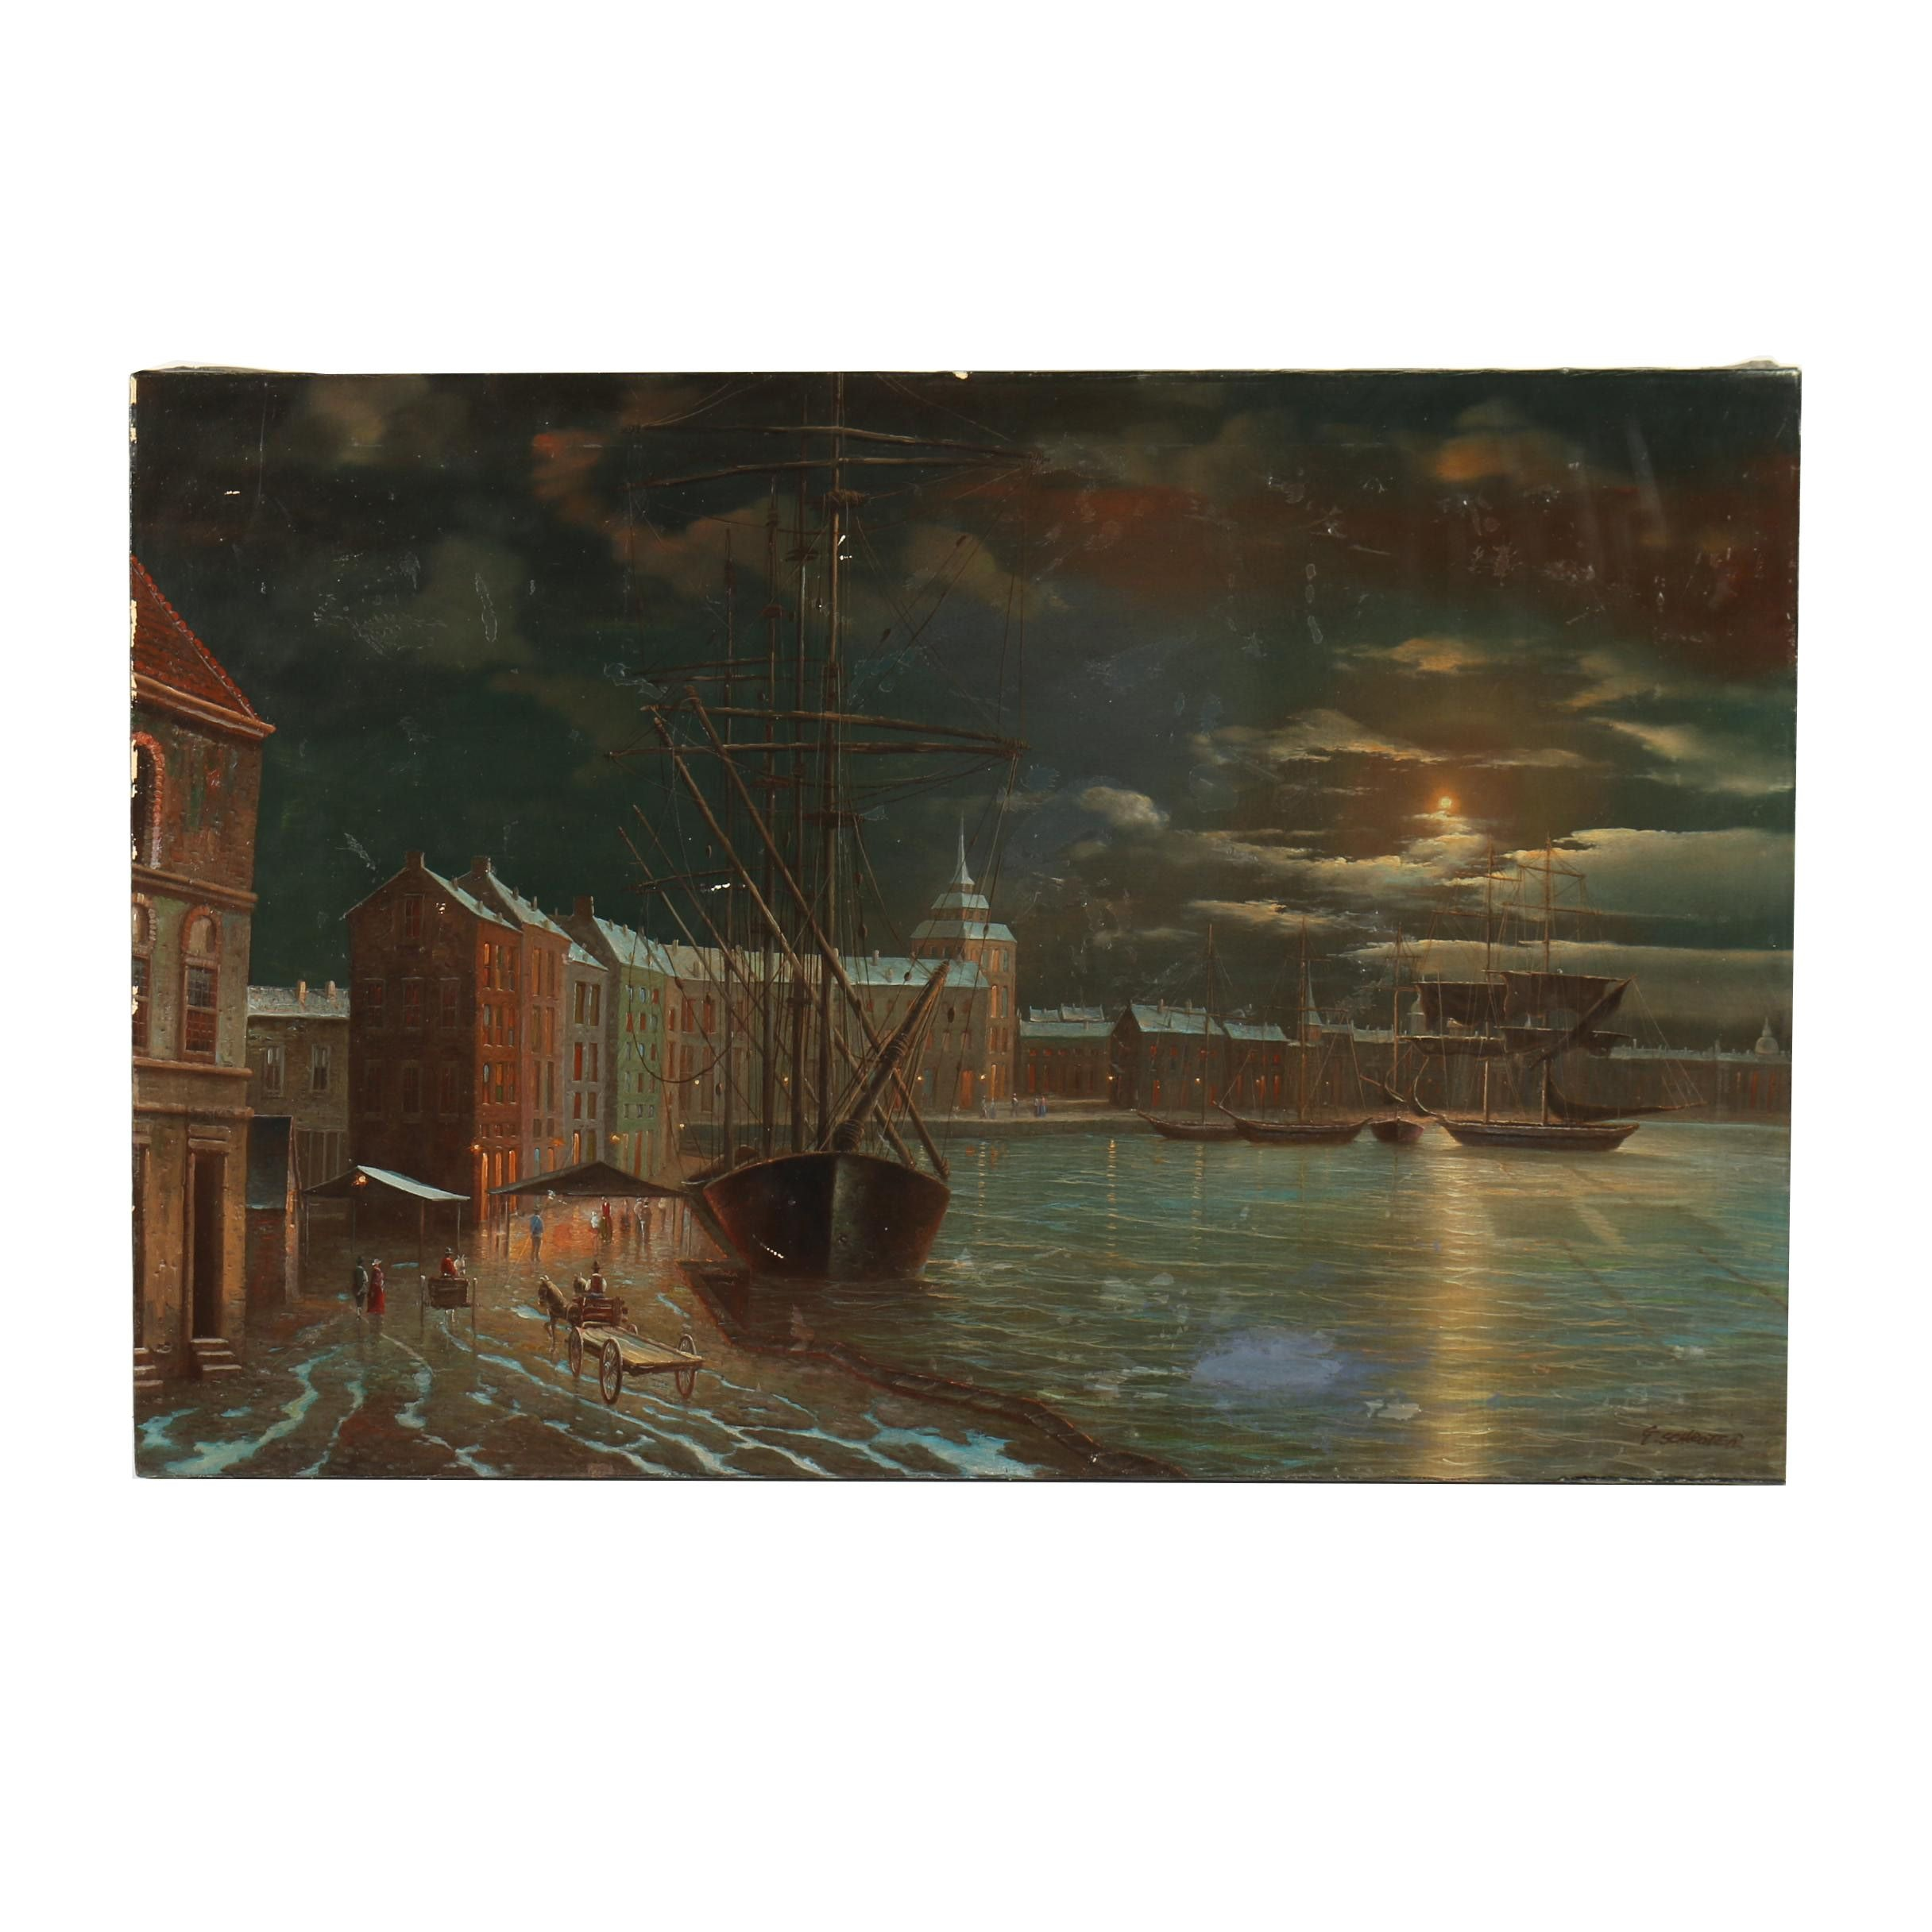 G. Schroter Oil Painting of Nighttime Waterfront Scene